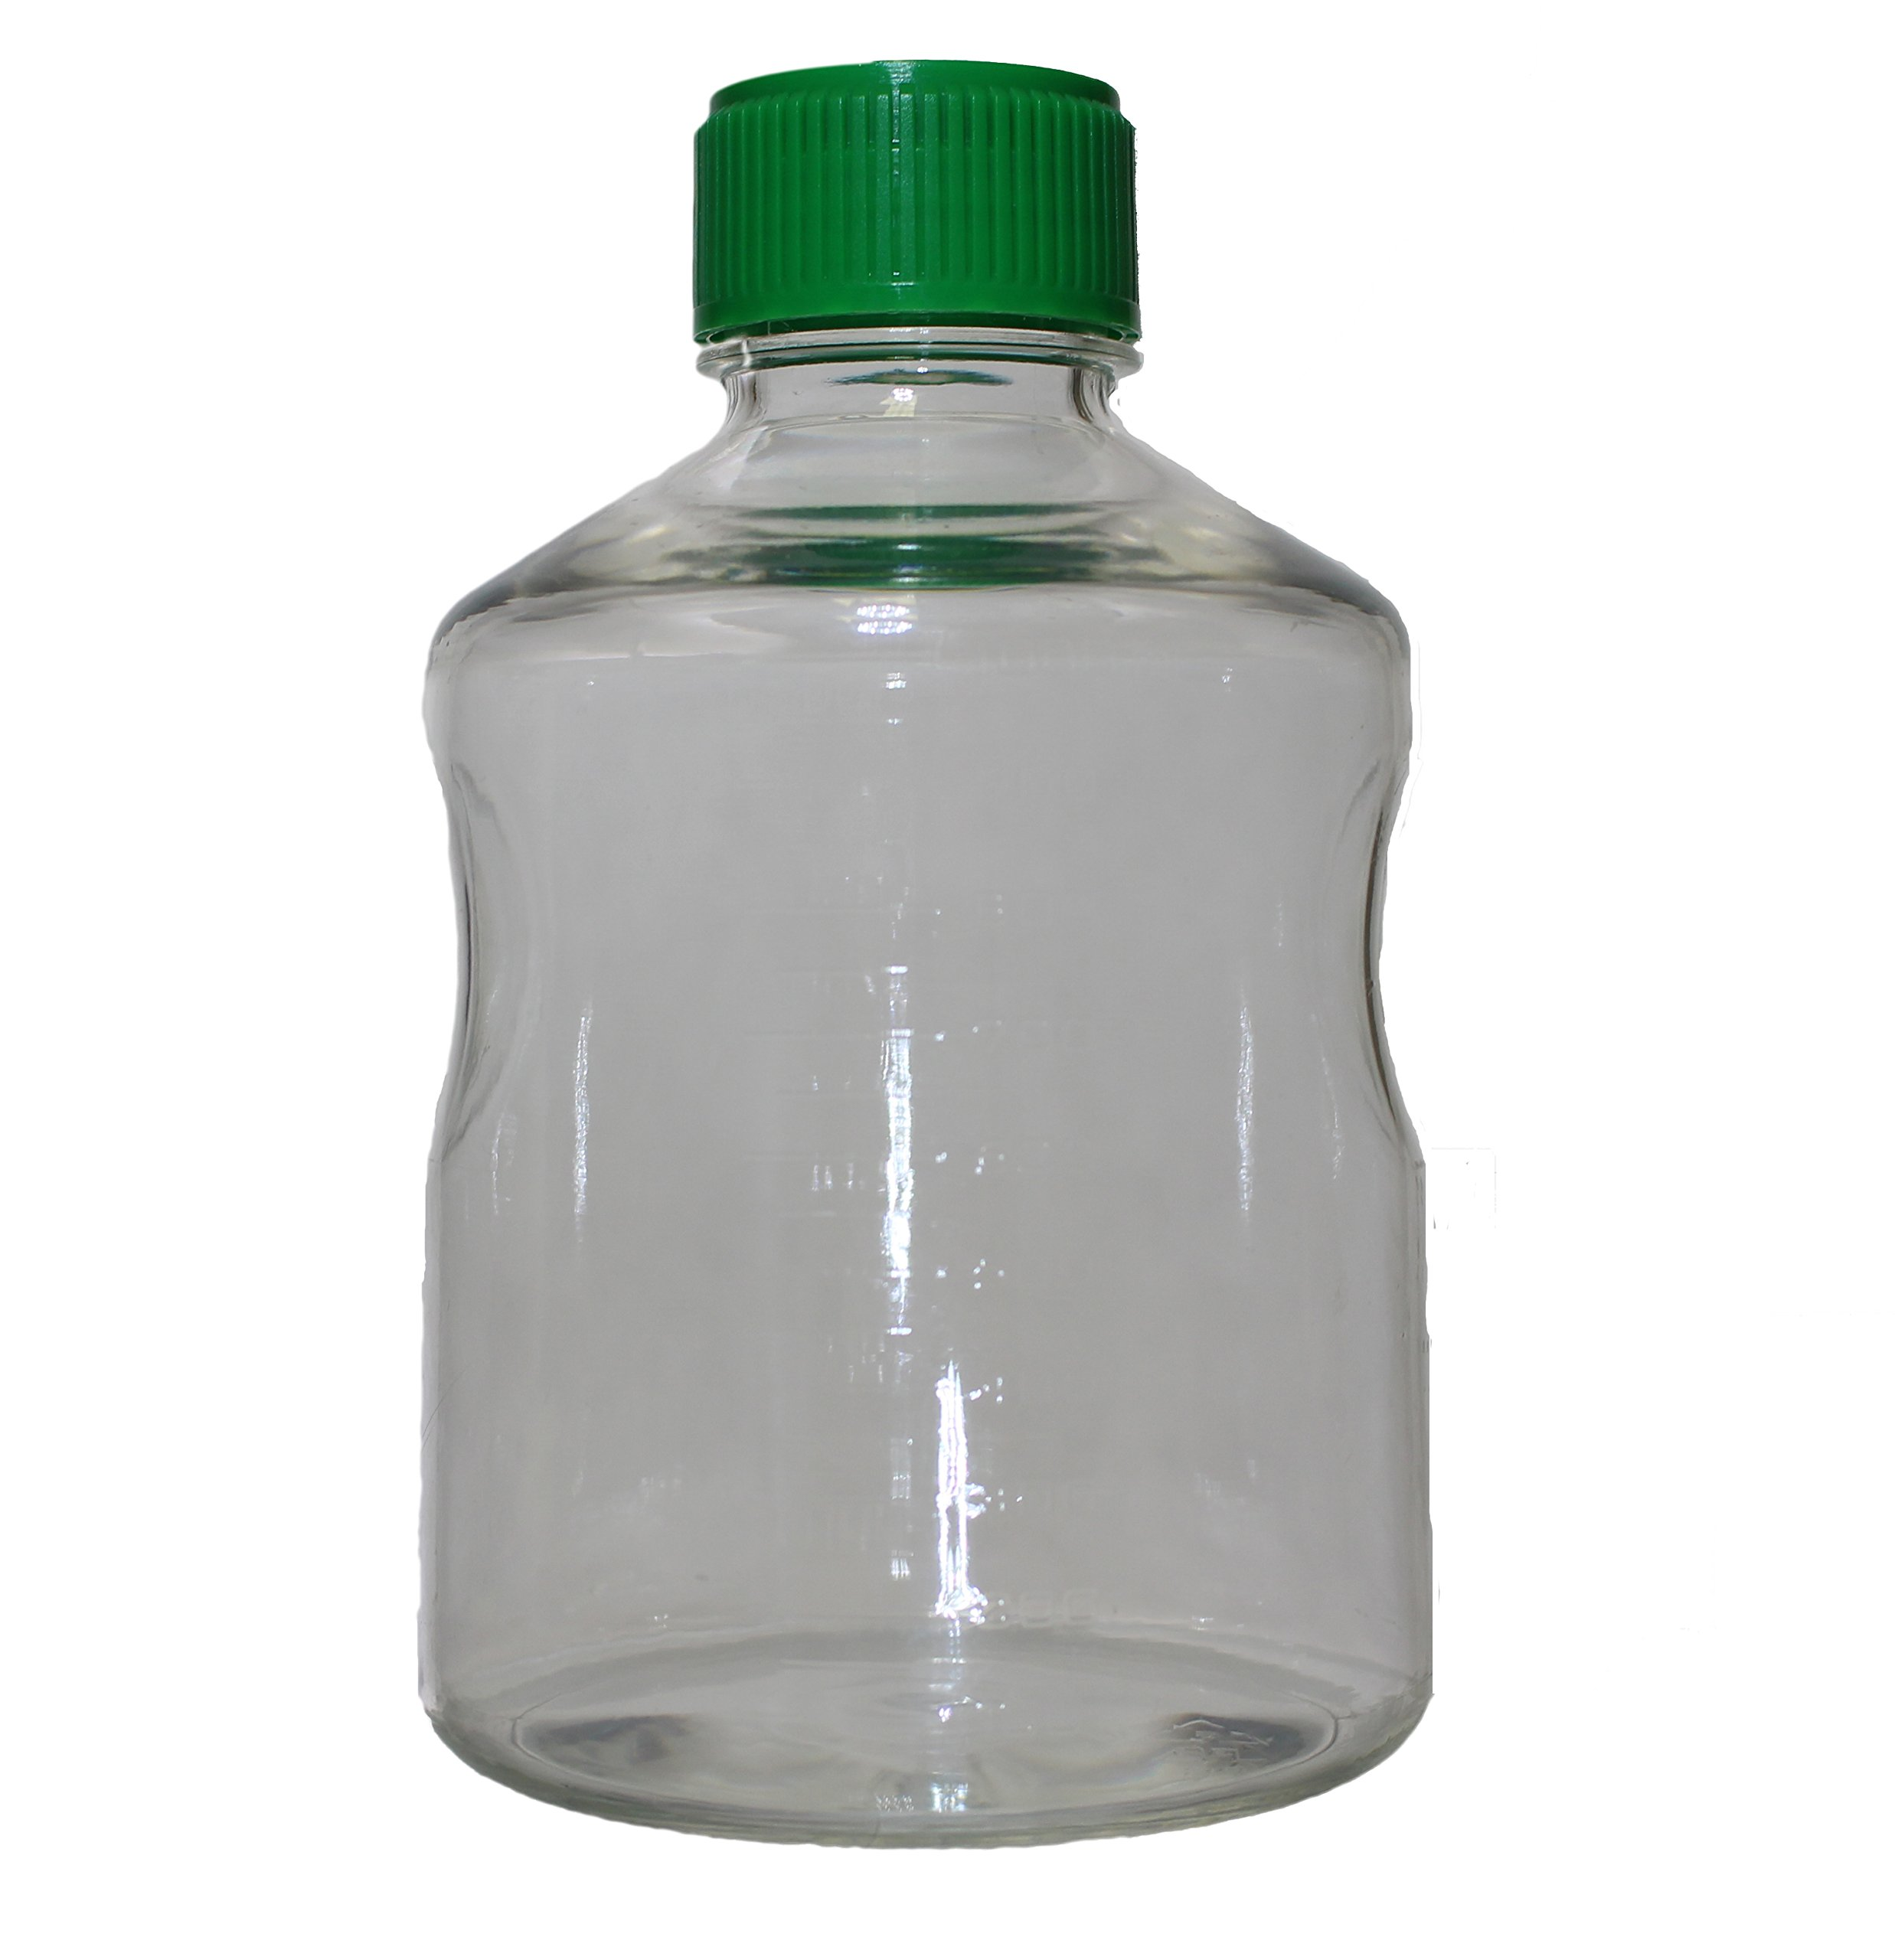 1000 mL Vacuum Filter Reservoir Bottle, Polystyrene, Sterile, Case of 24 by Syringa Lab Supplies